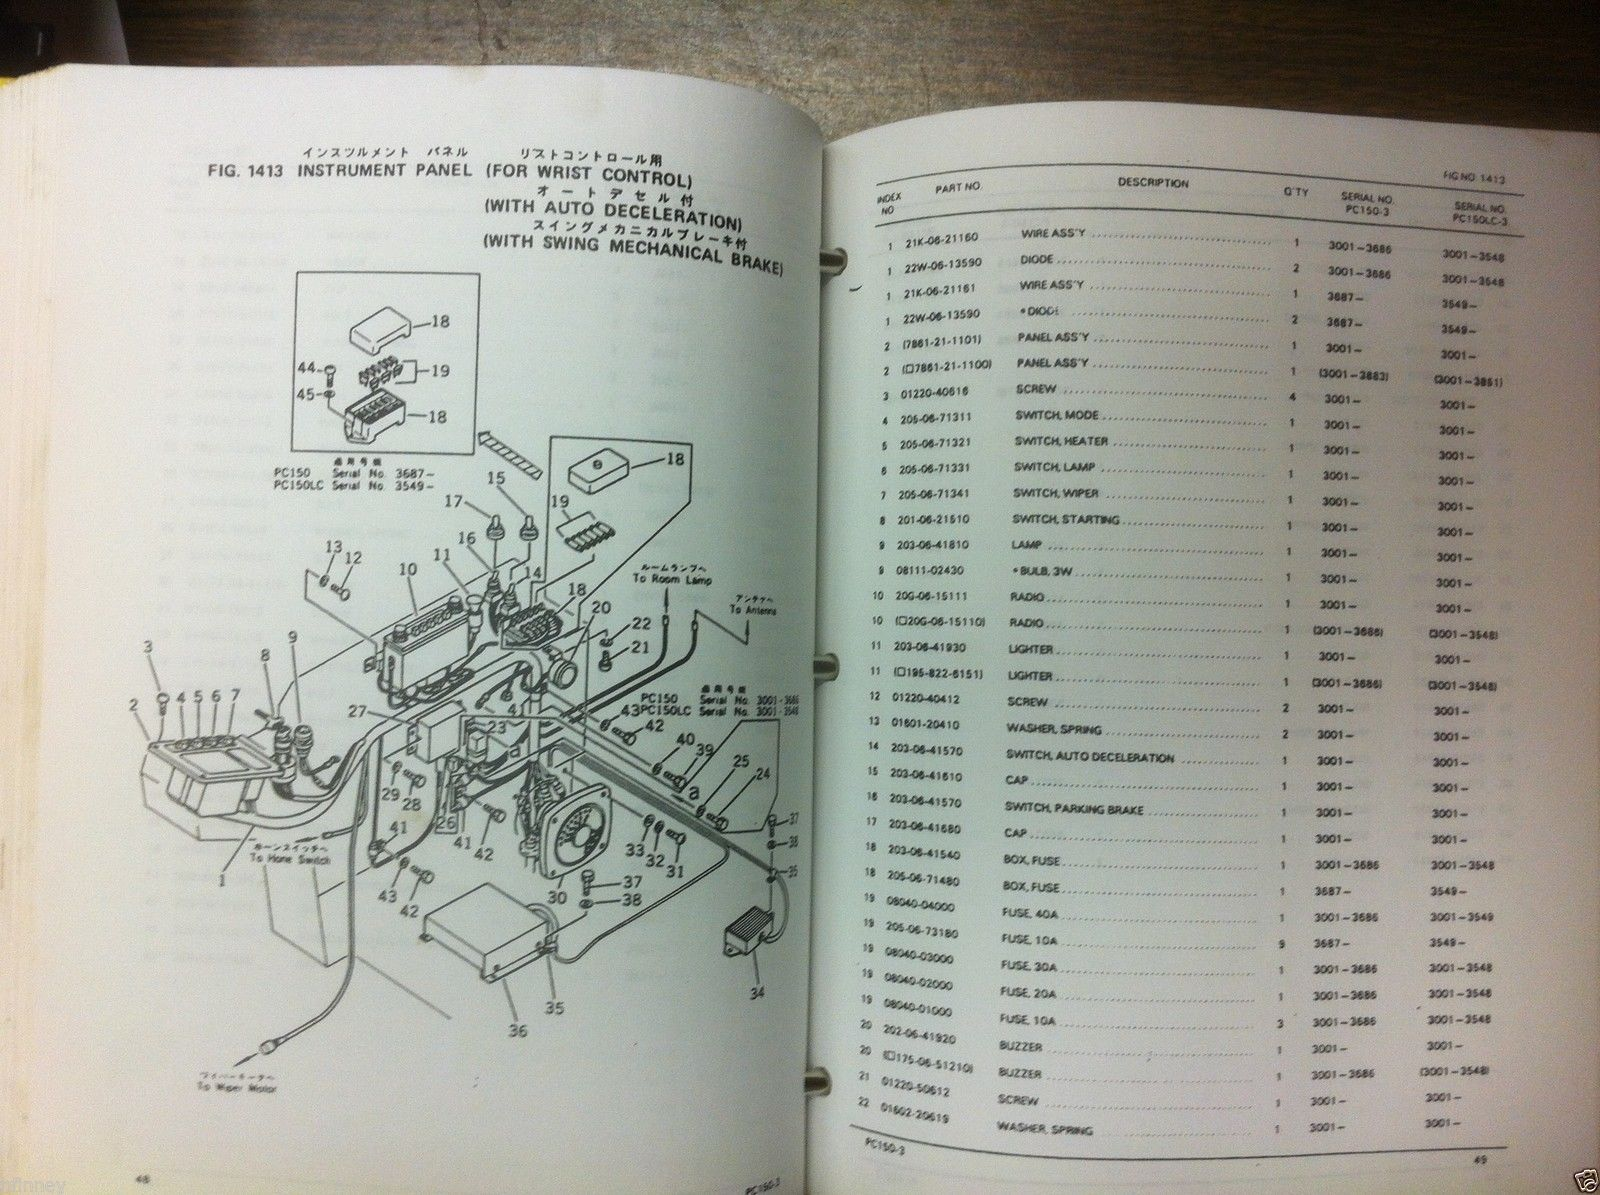 Komatsu Wiring Diagram Pc150 6 Electrical Diagrams Excavators 3 Pc150lc Hydraulic Excavator Parts Manual Book New